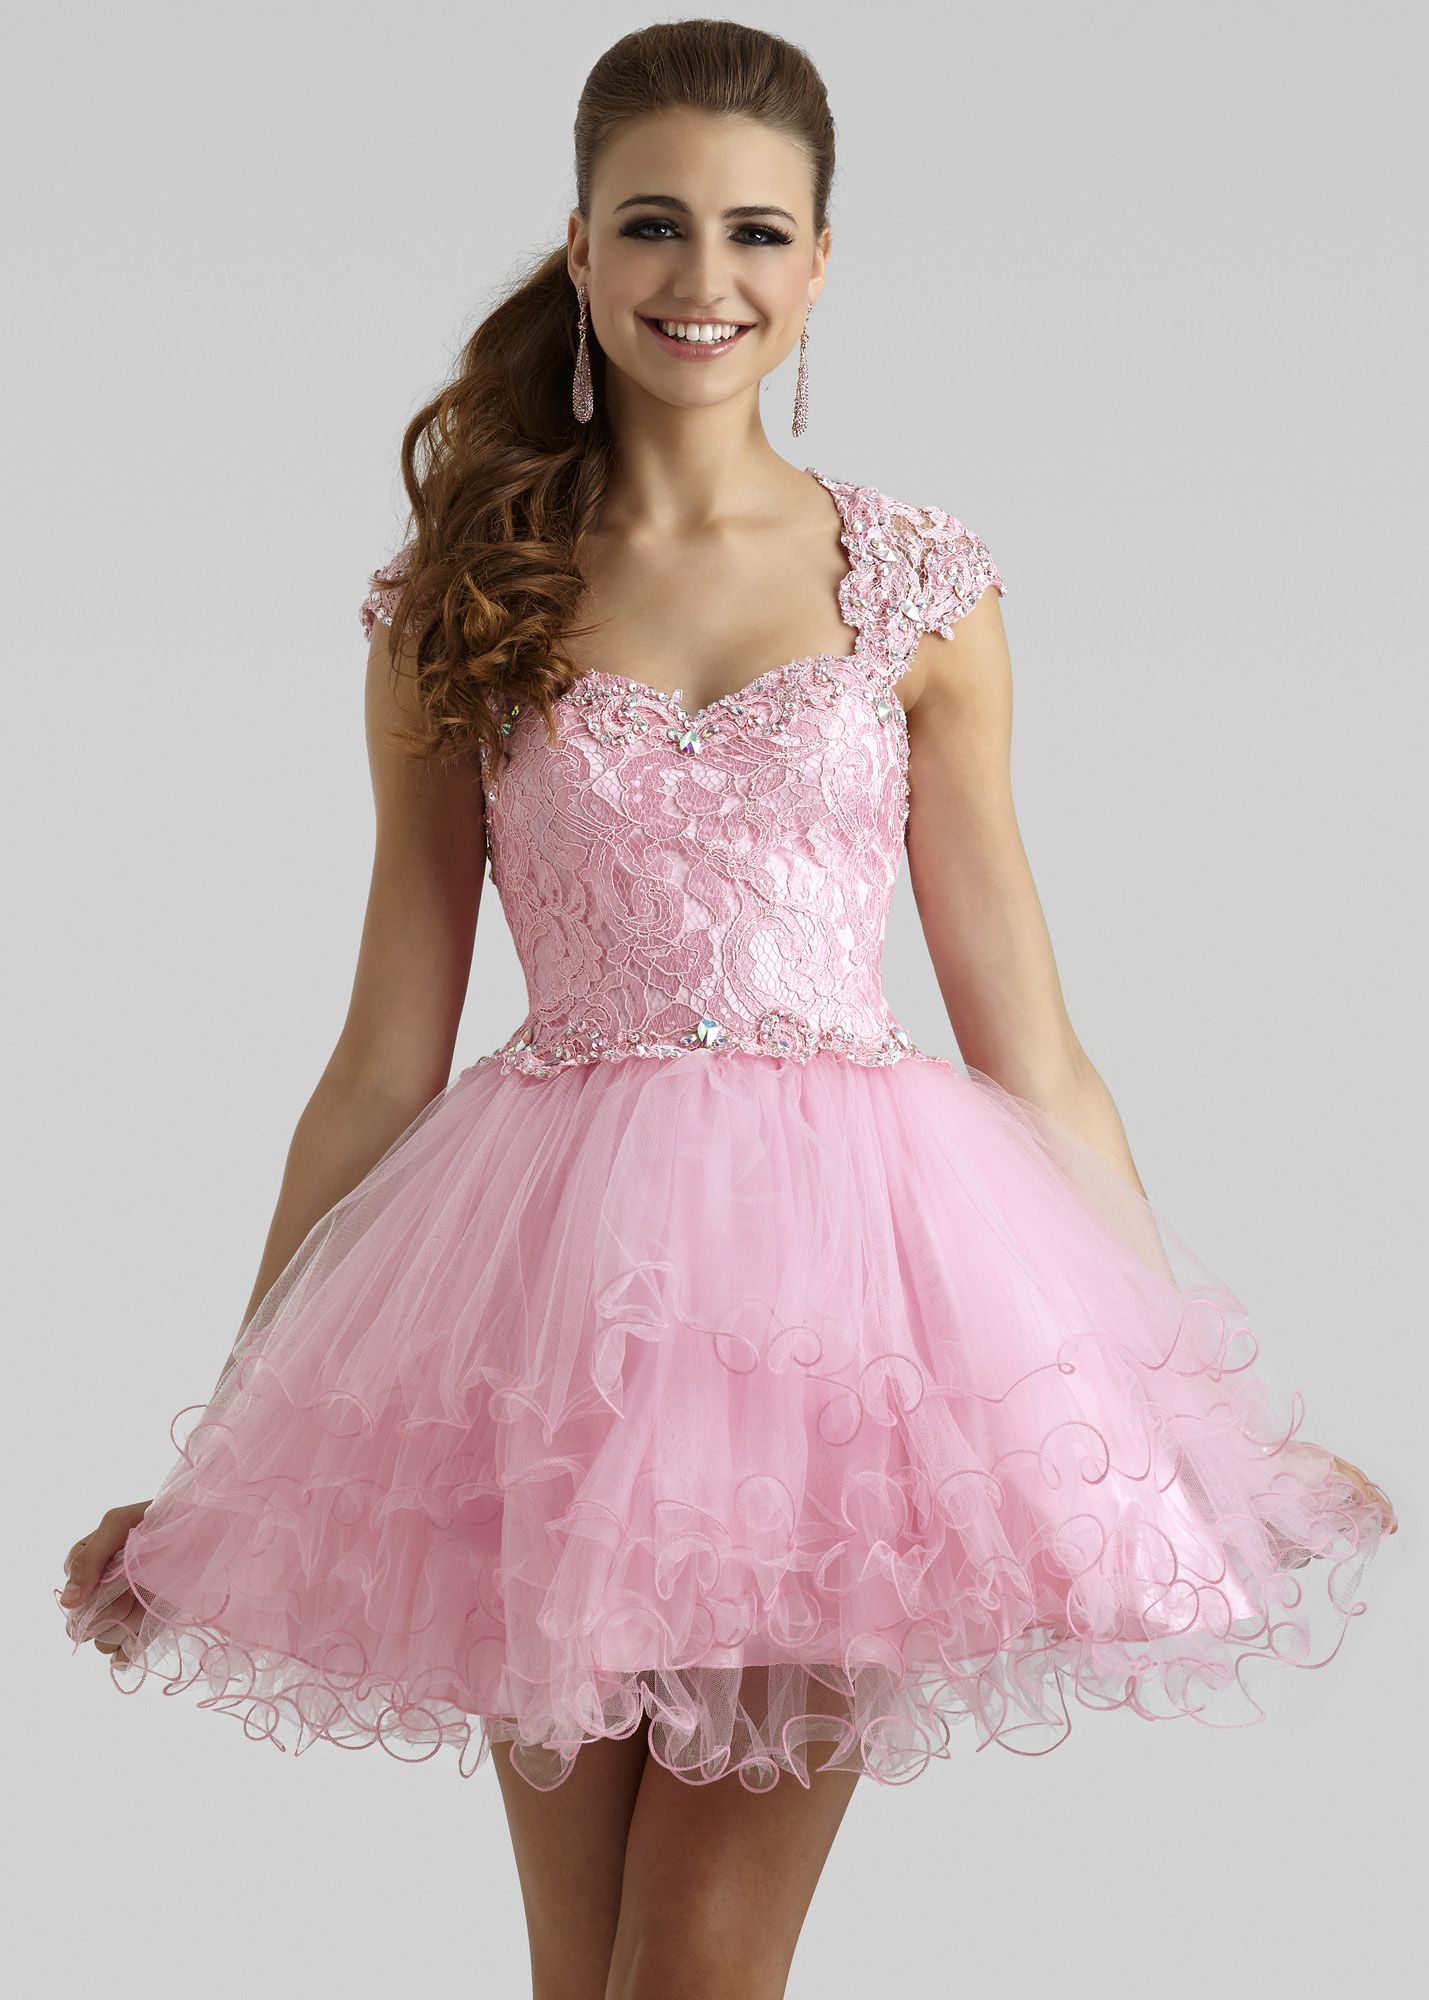 Clarisse 2332 - Princess Pink Lace Short Prom Dress | Fancy | Pinterest